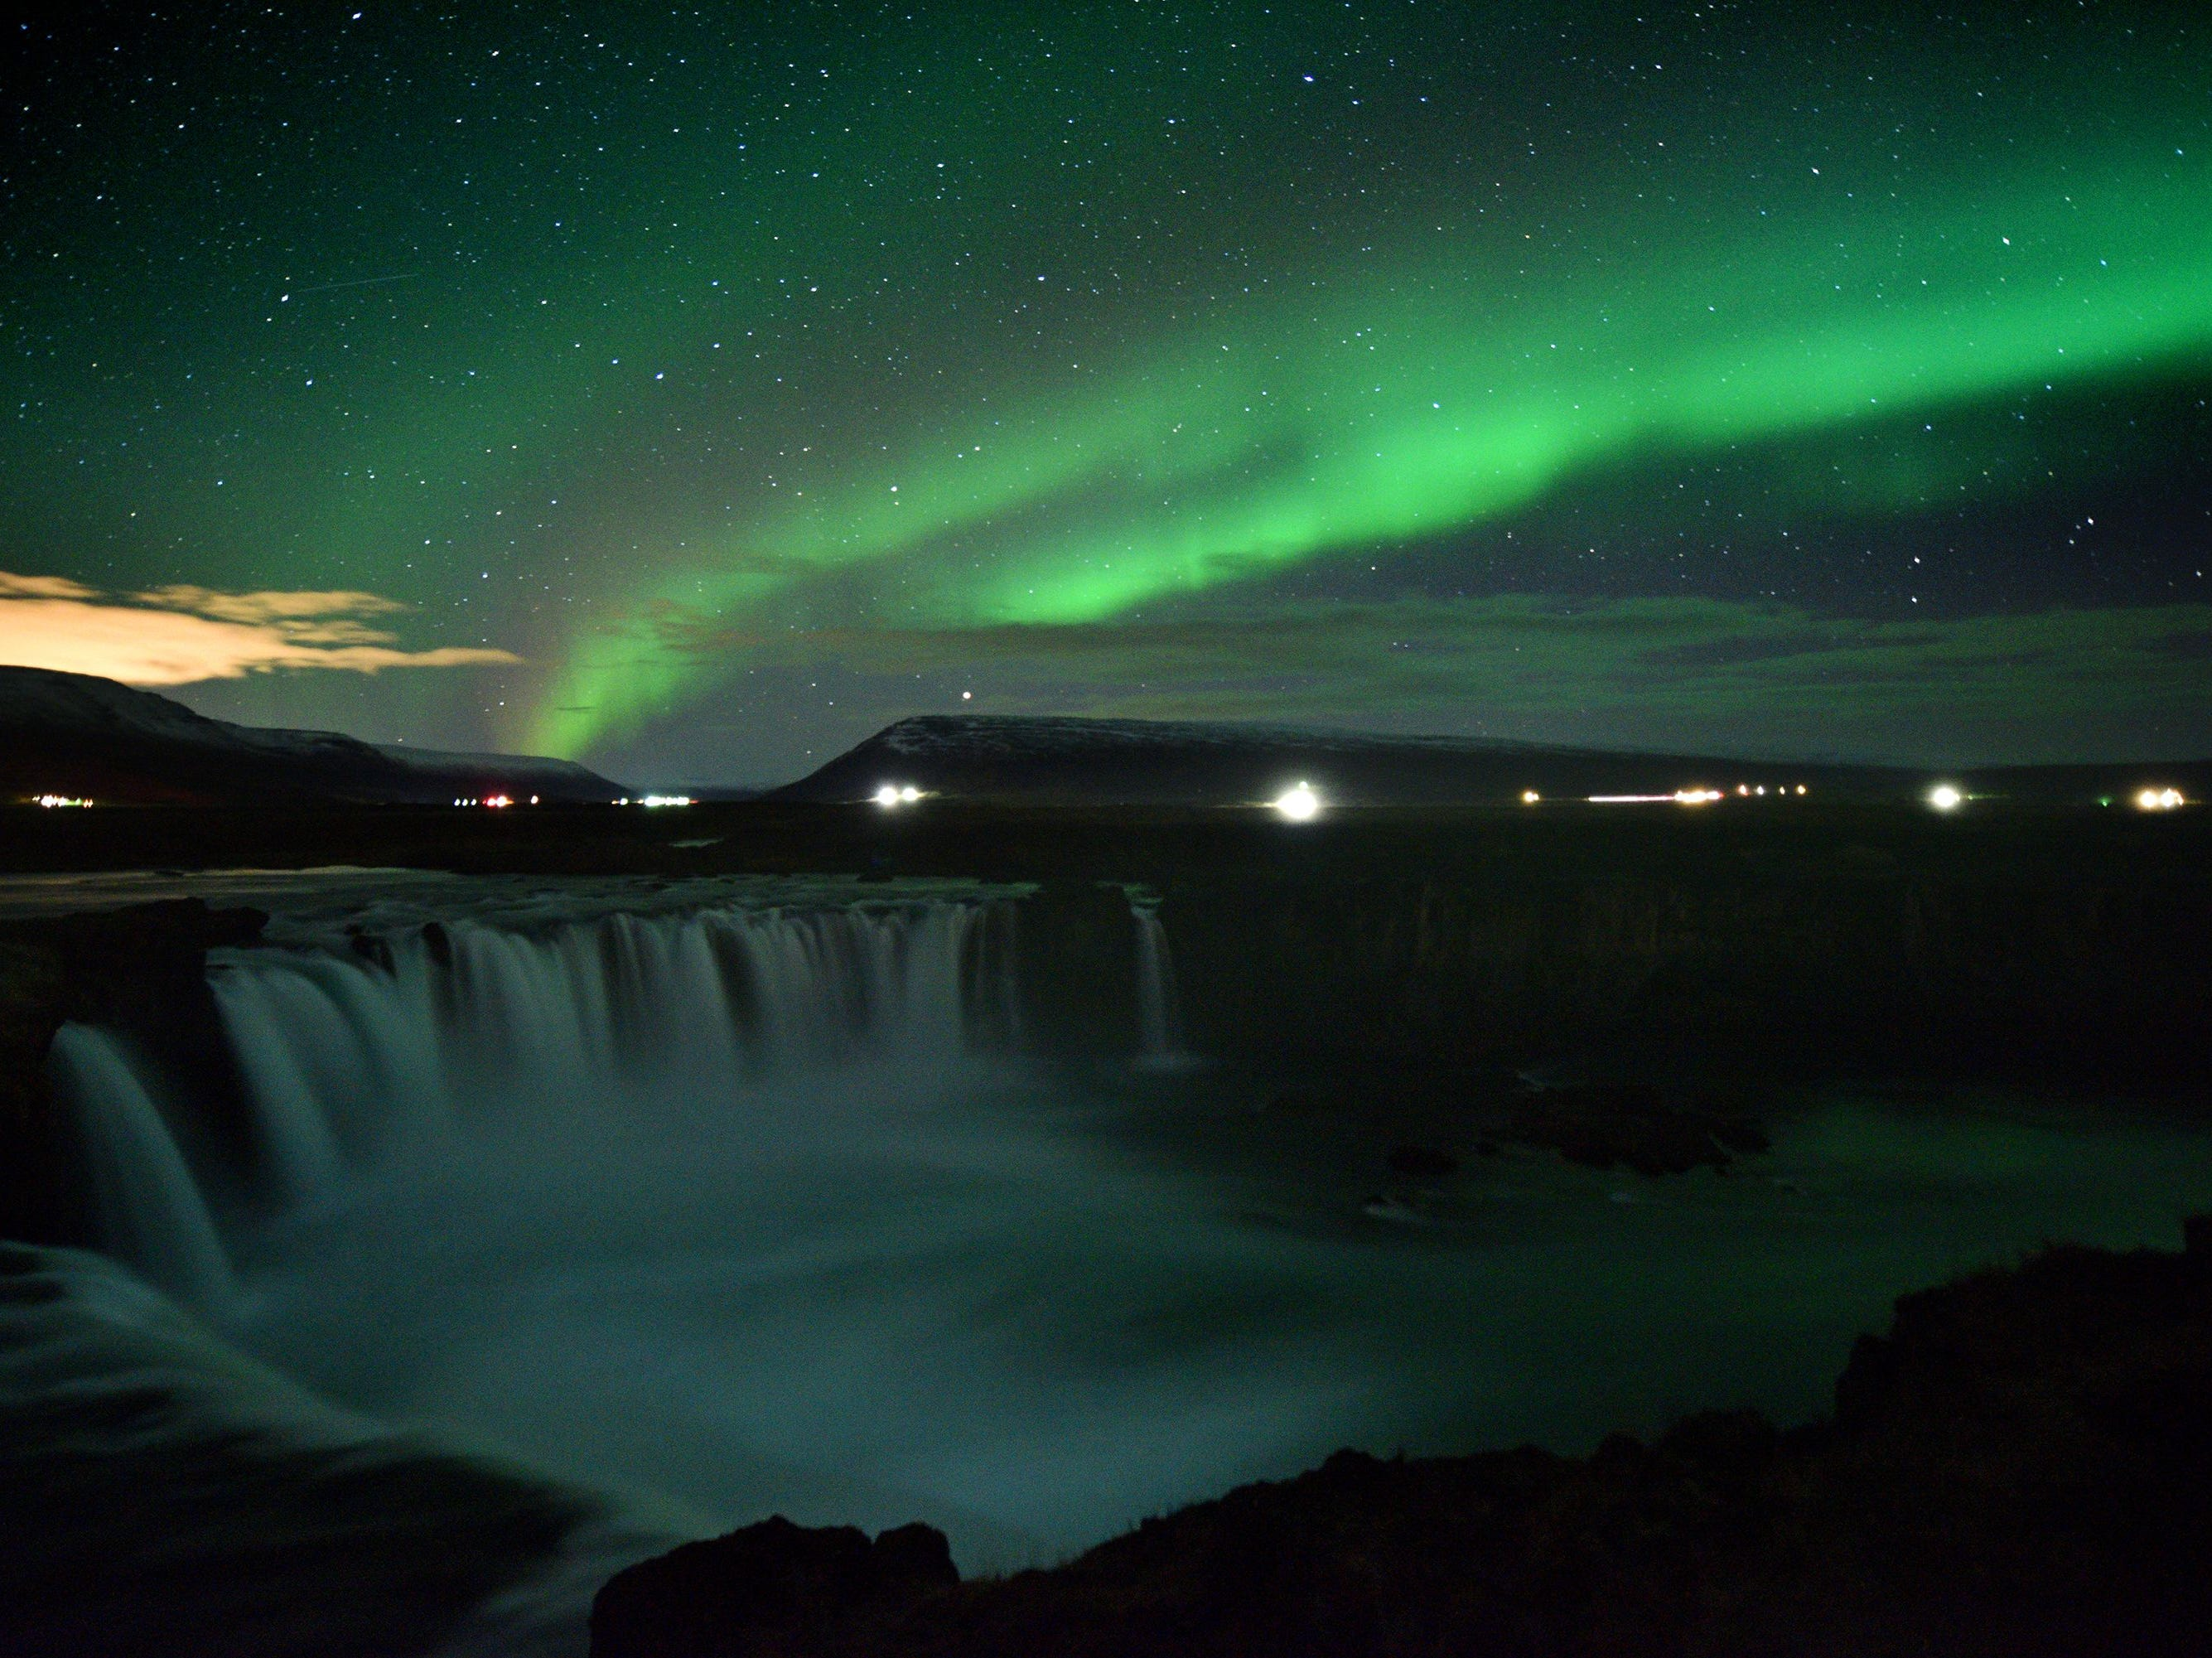 The aurora borealis, also known as Northern Lights, is seen over Godafoss waterfall, in the municipality of Thingeyjarsveit, east of Akureyri, in northern Iceland on October 14, 2018.